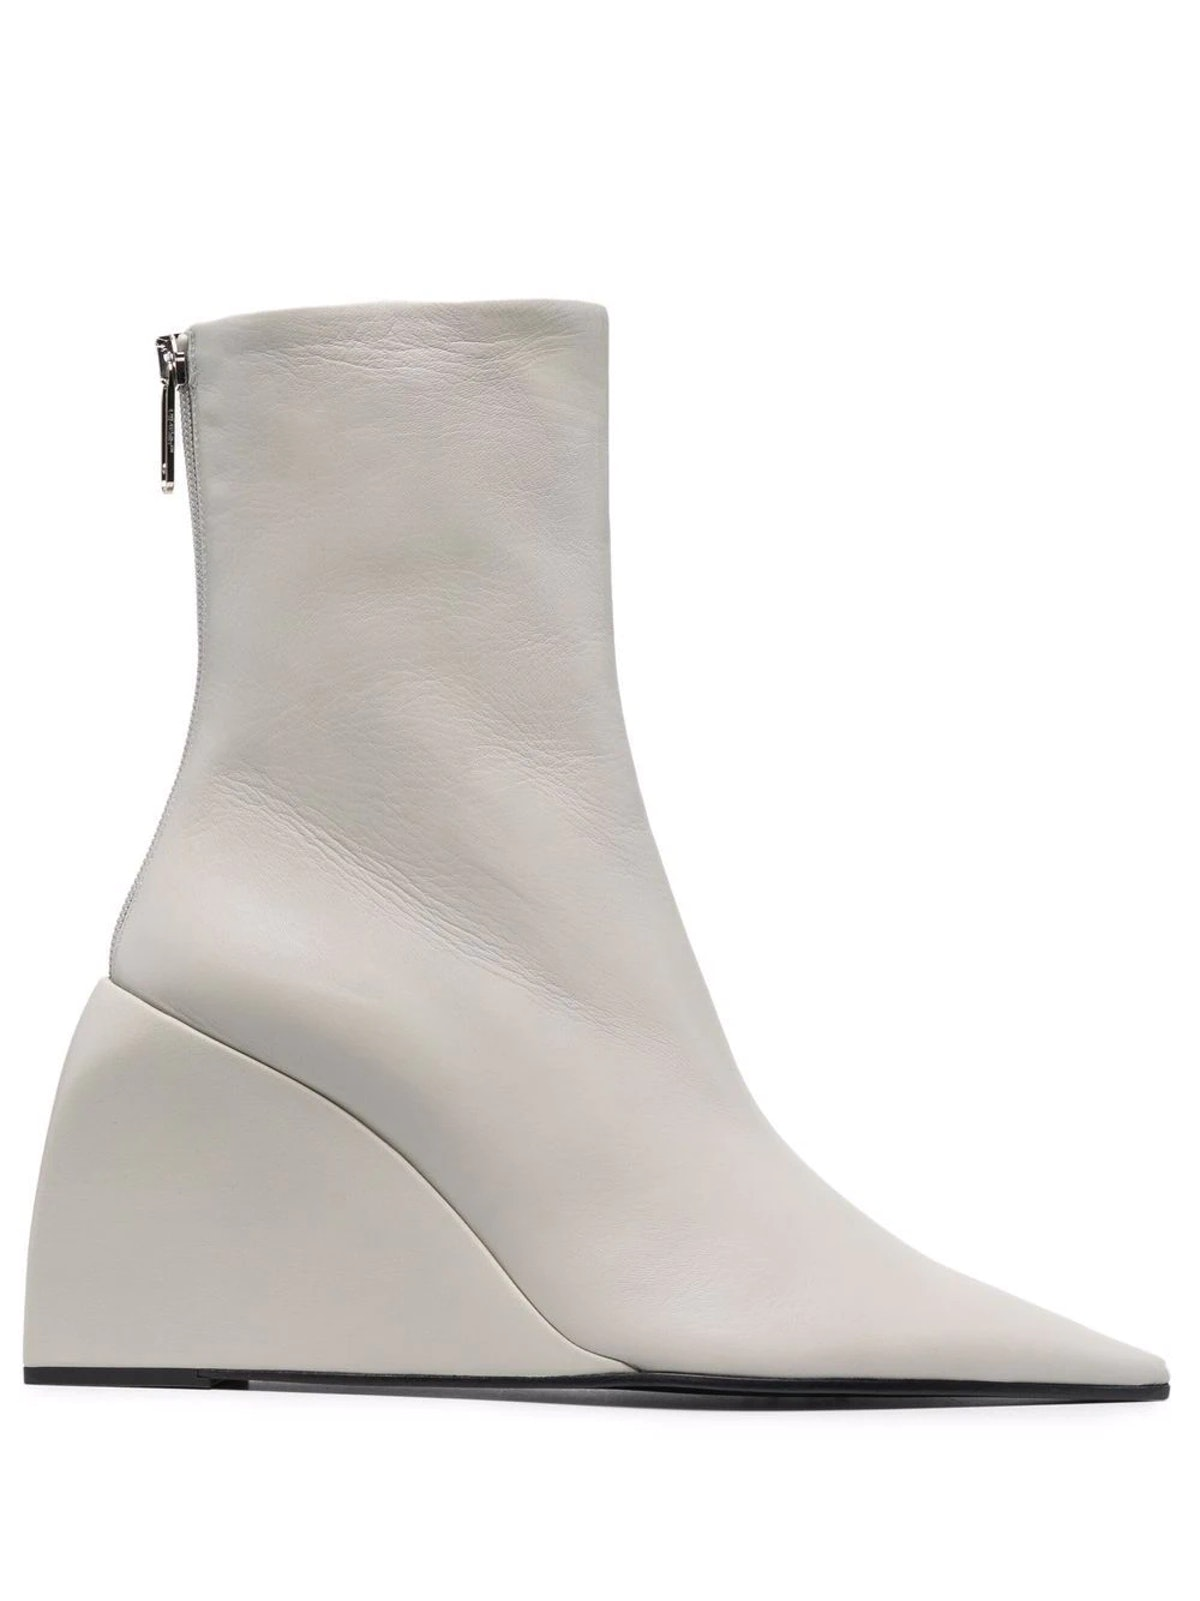 White Dolls wedge boot from Off-White, available to shop via Farfetch.